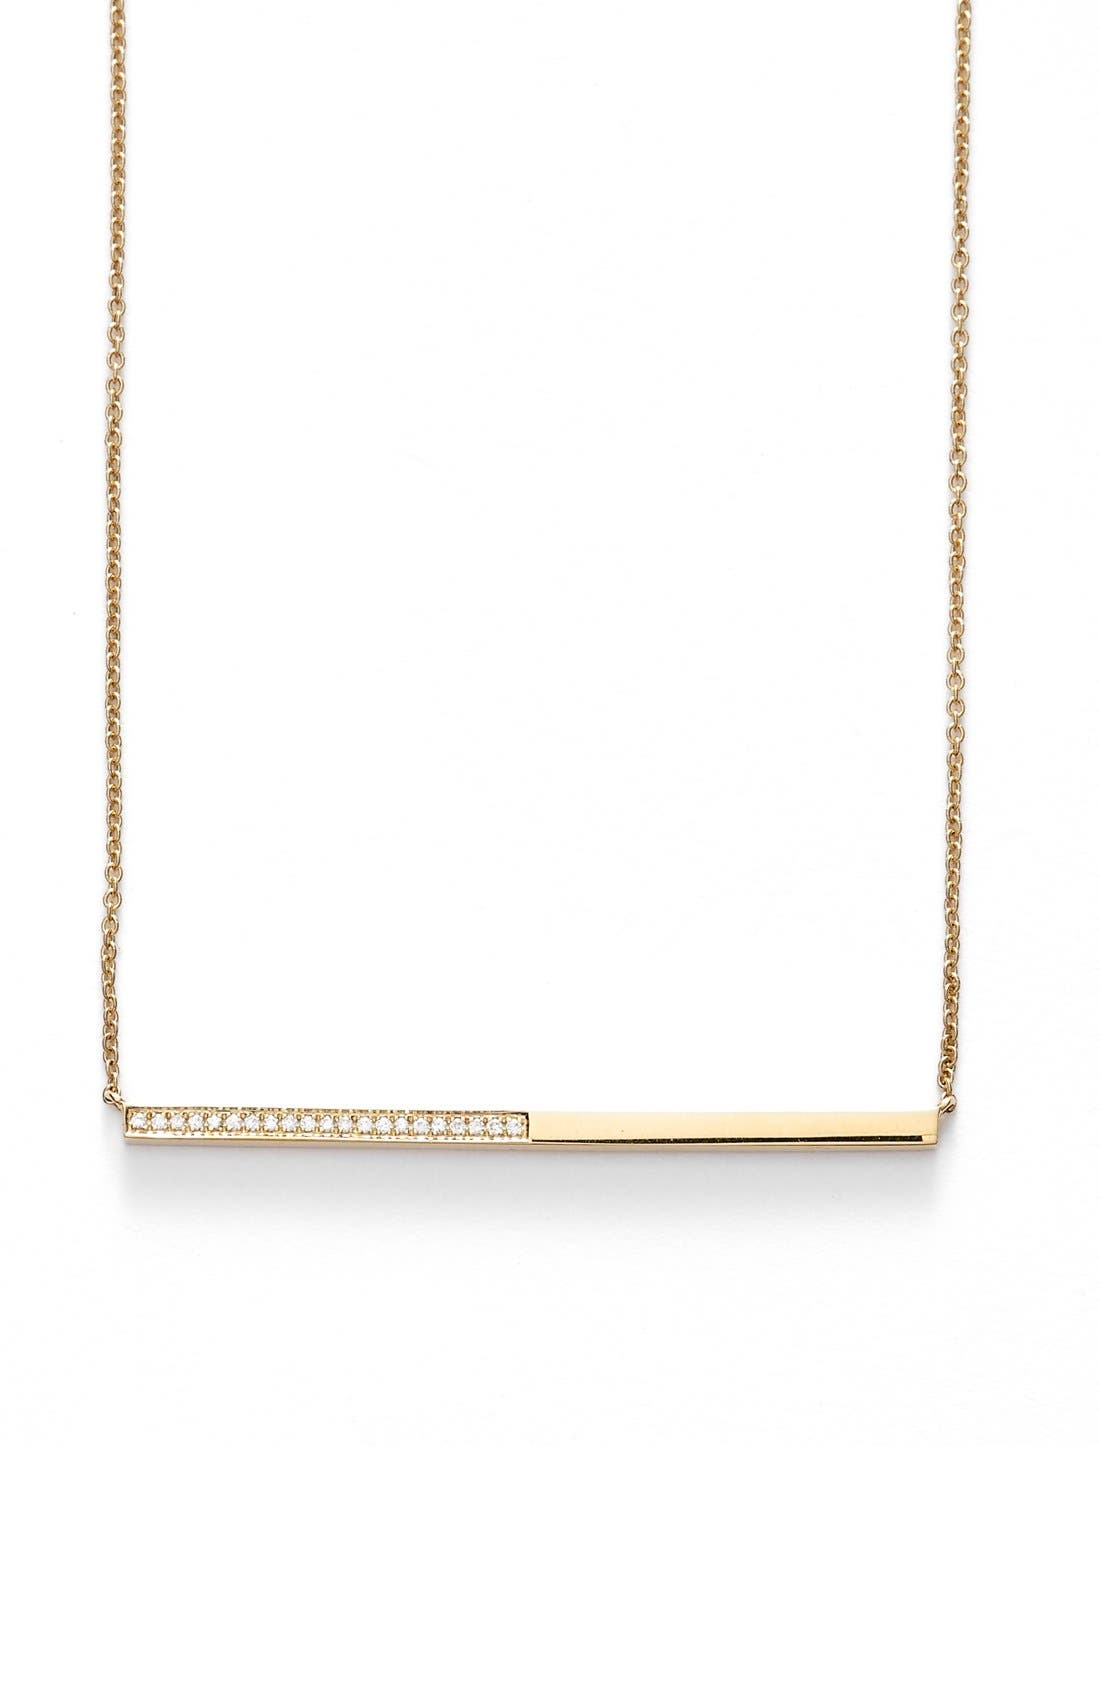 Main Image - Bony Levy Diamond Bar Pendant Necklace (Limited Edition) (Nordstrom Exclusive)